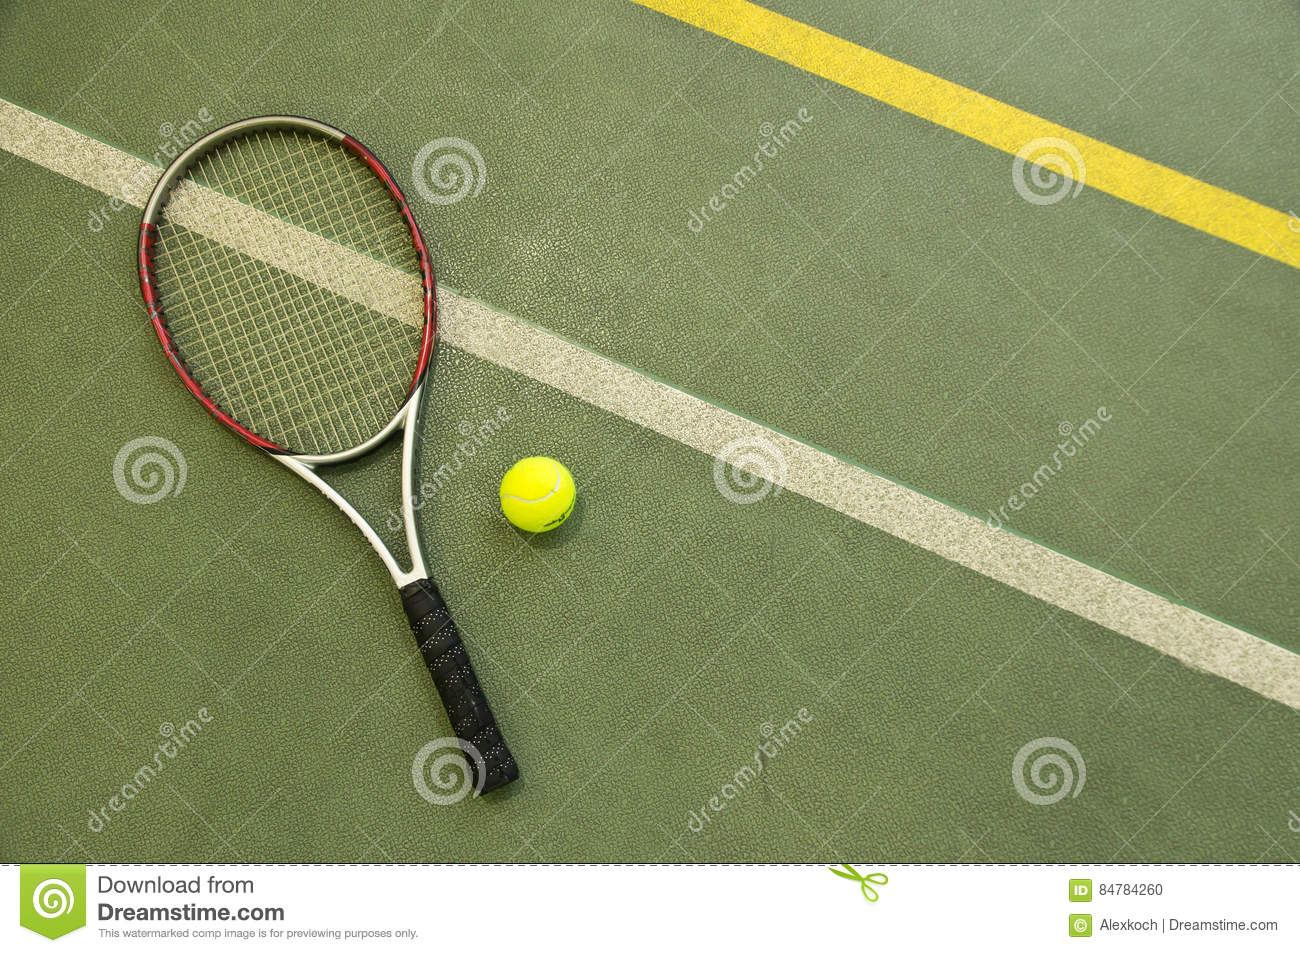 Tennis racket and ball. Wallpaper.